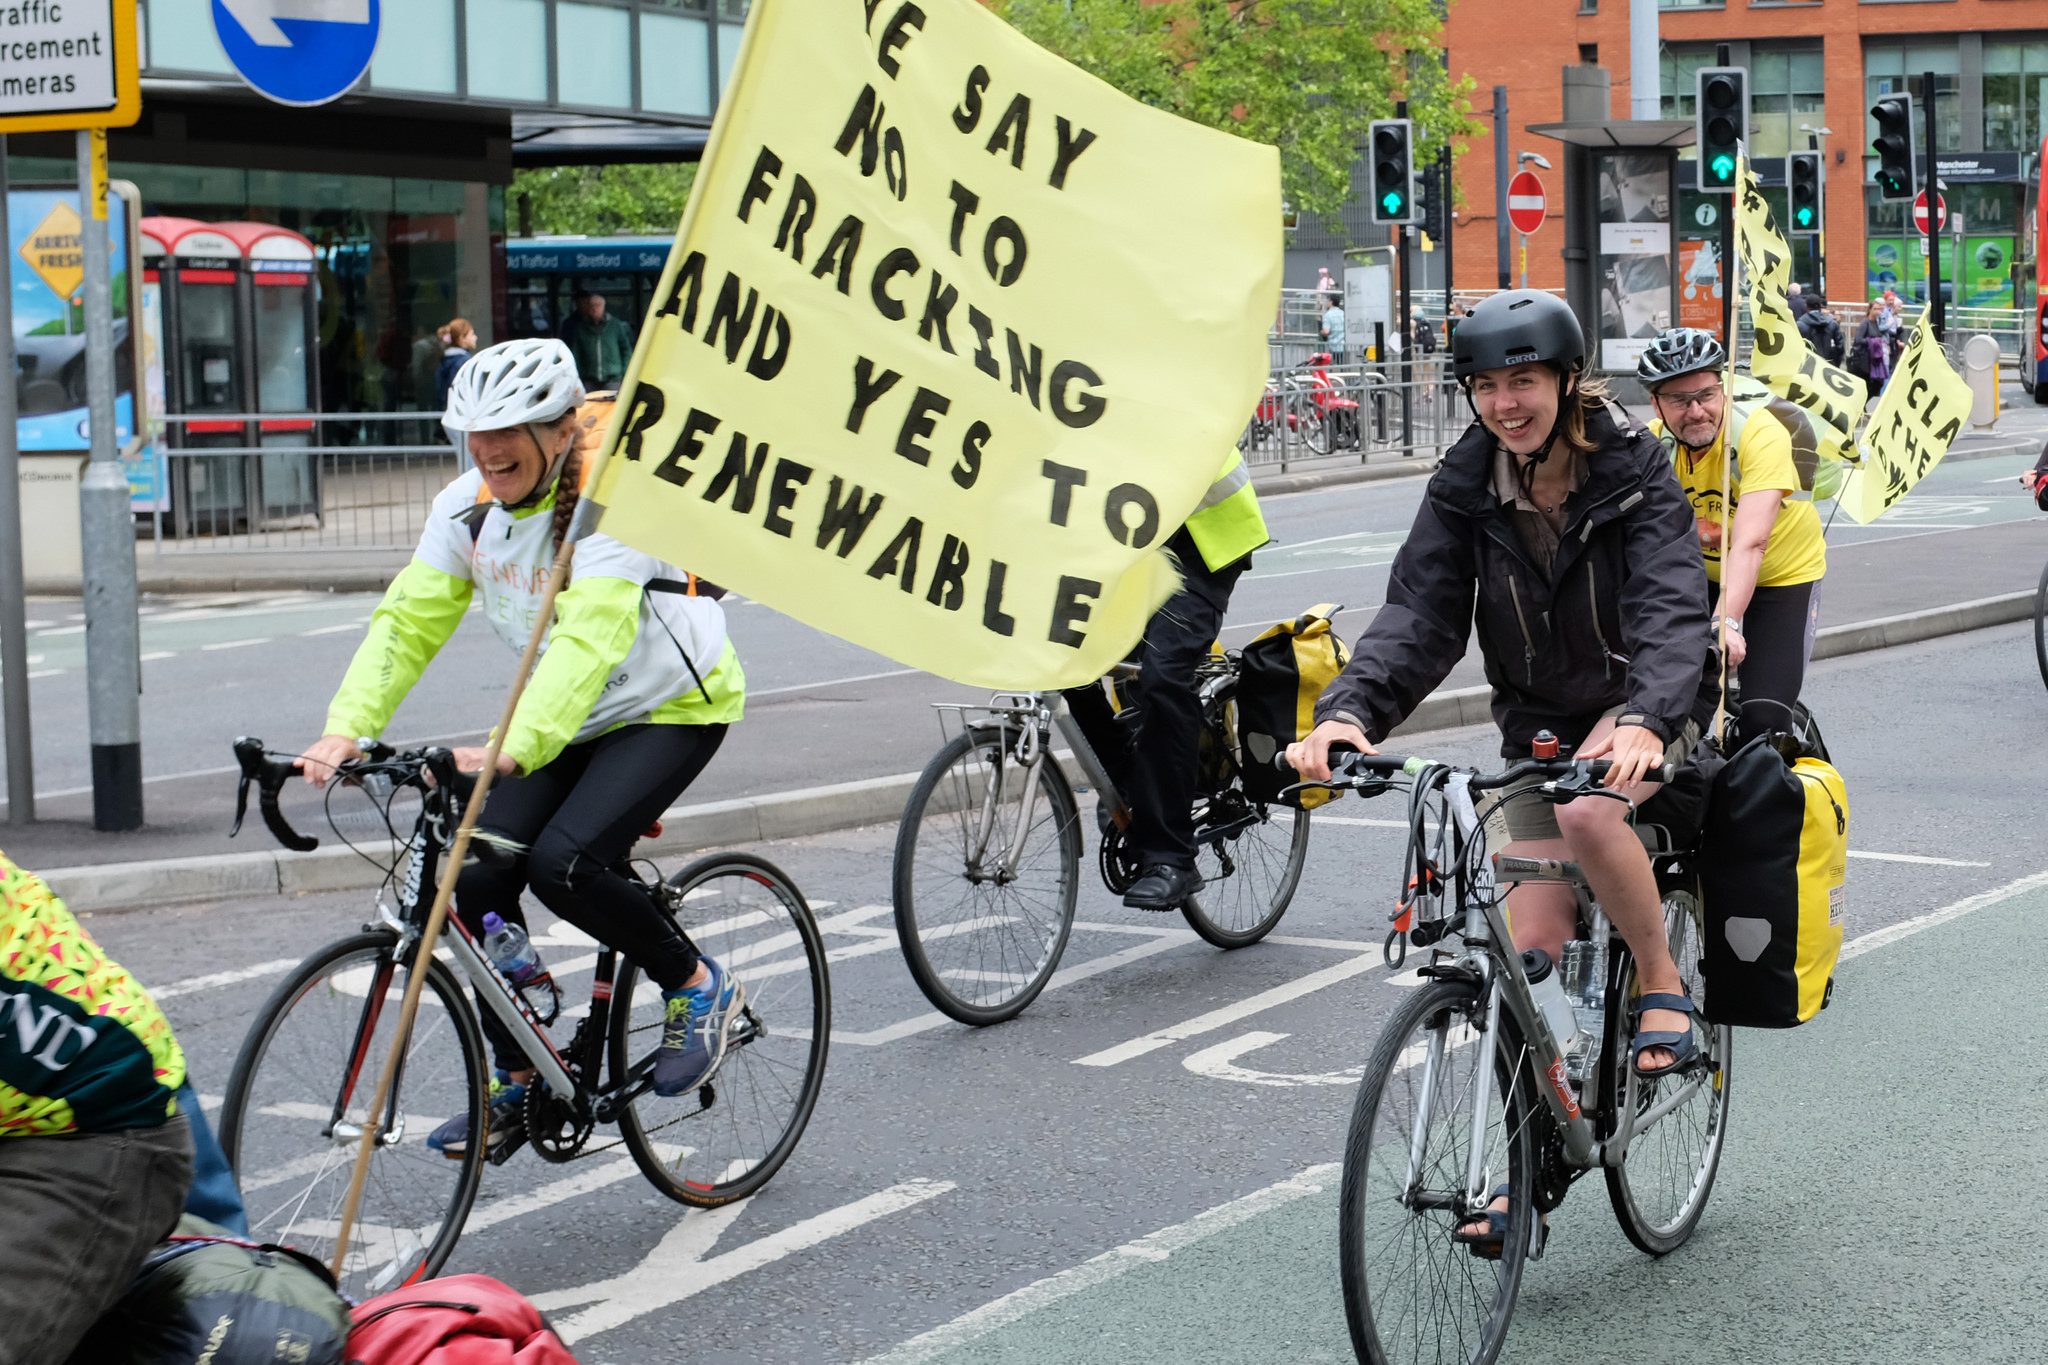 Anti-fracking bike ride: Fracking Protestors in Lancashire as part of the #RollingResistance